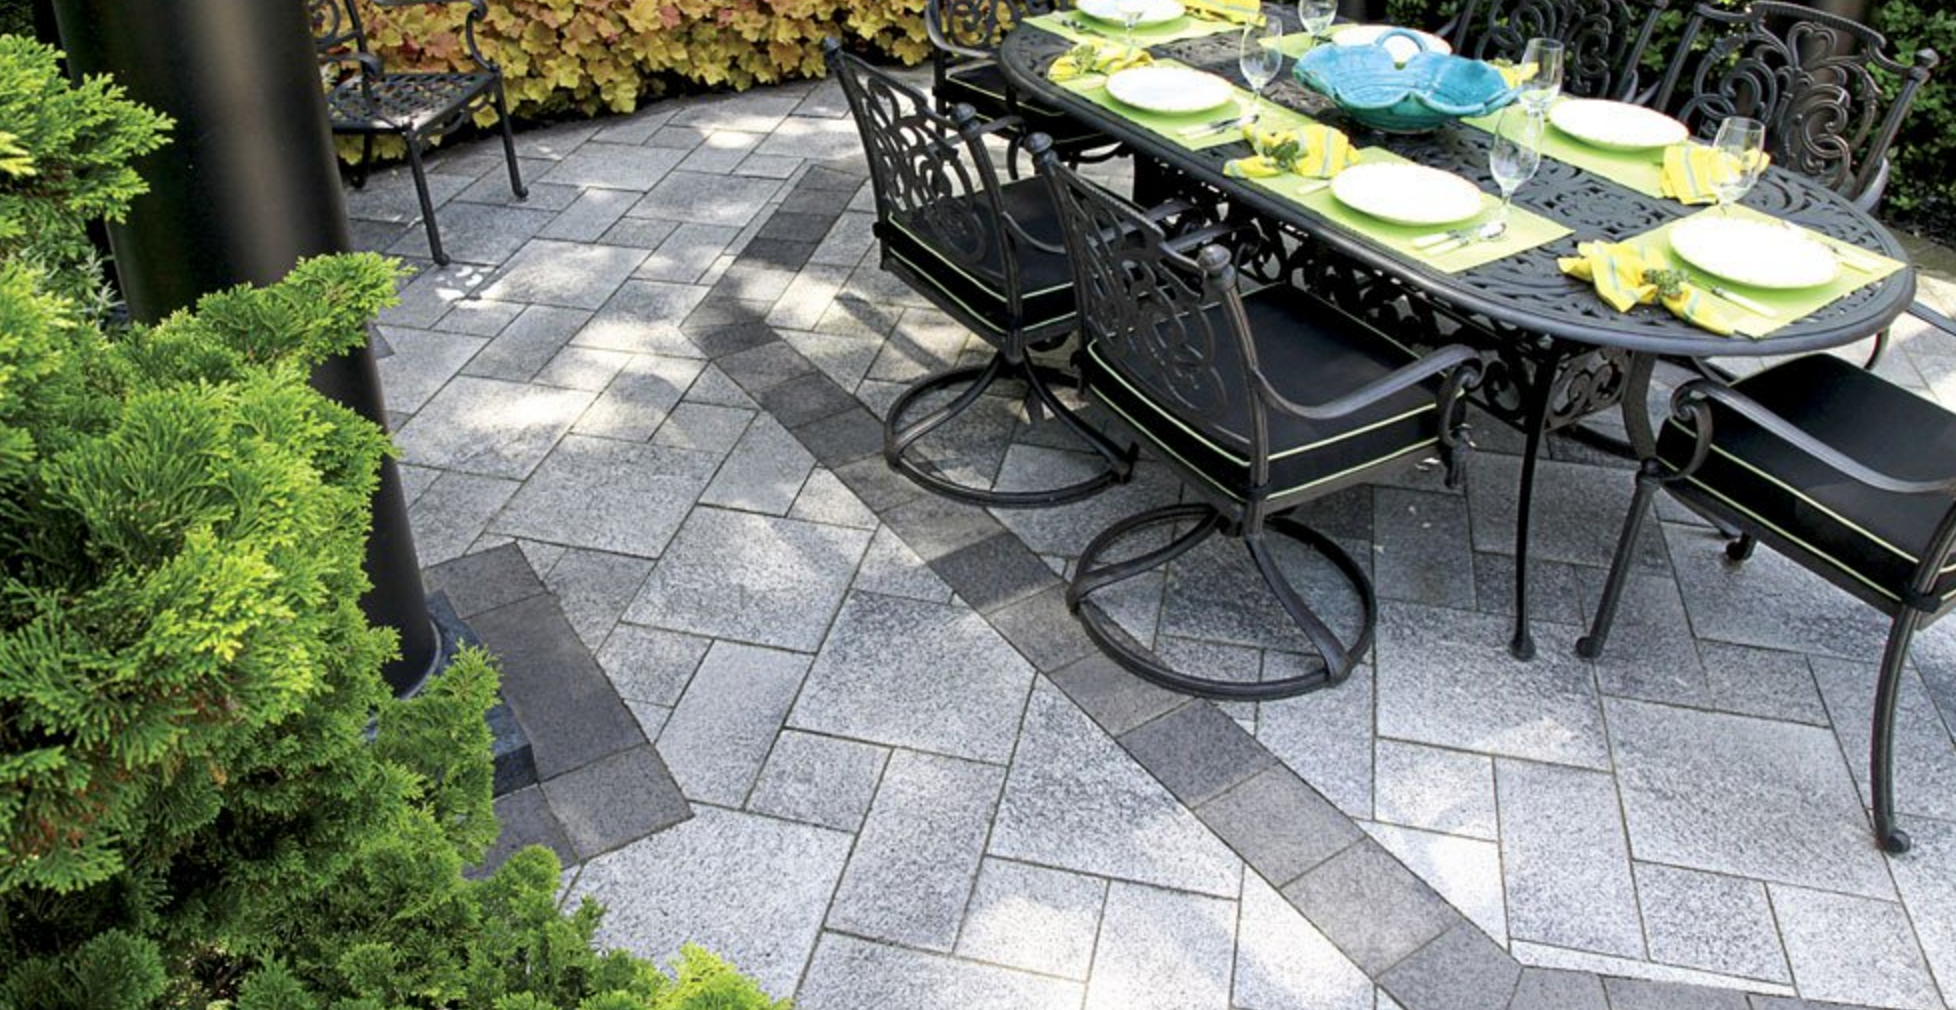 Banding, Borders, And Inlays: Patio Stone Designs For Burlington, ON  Landscapes